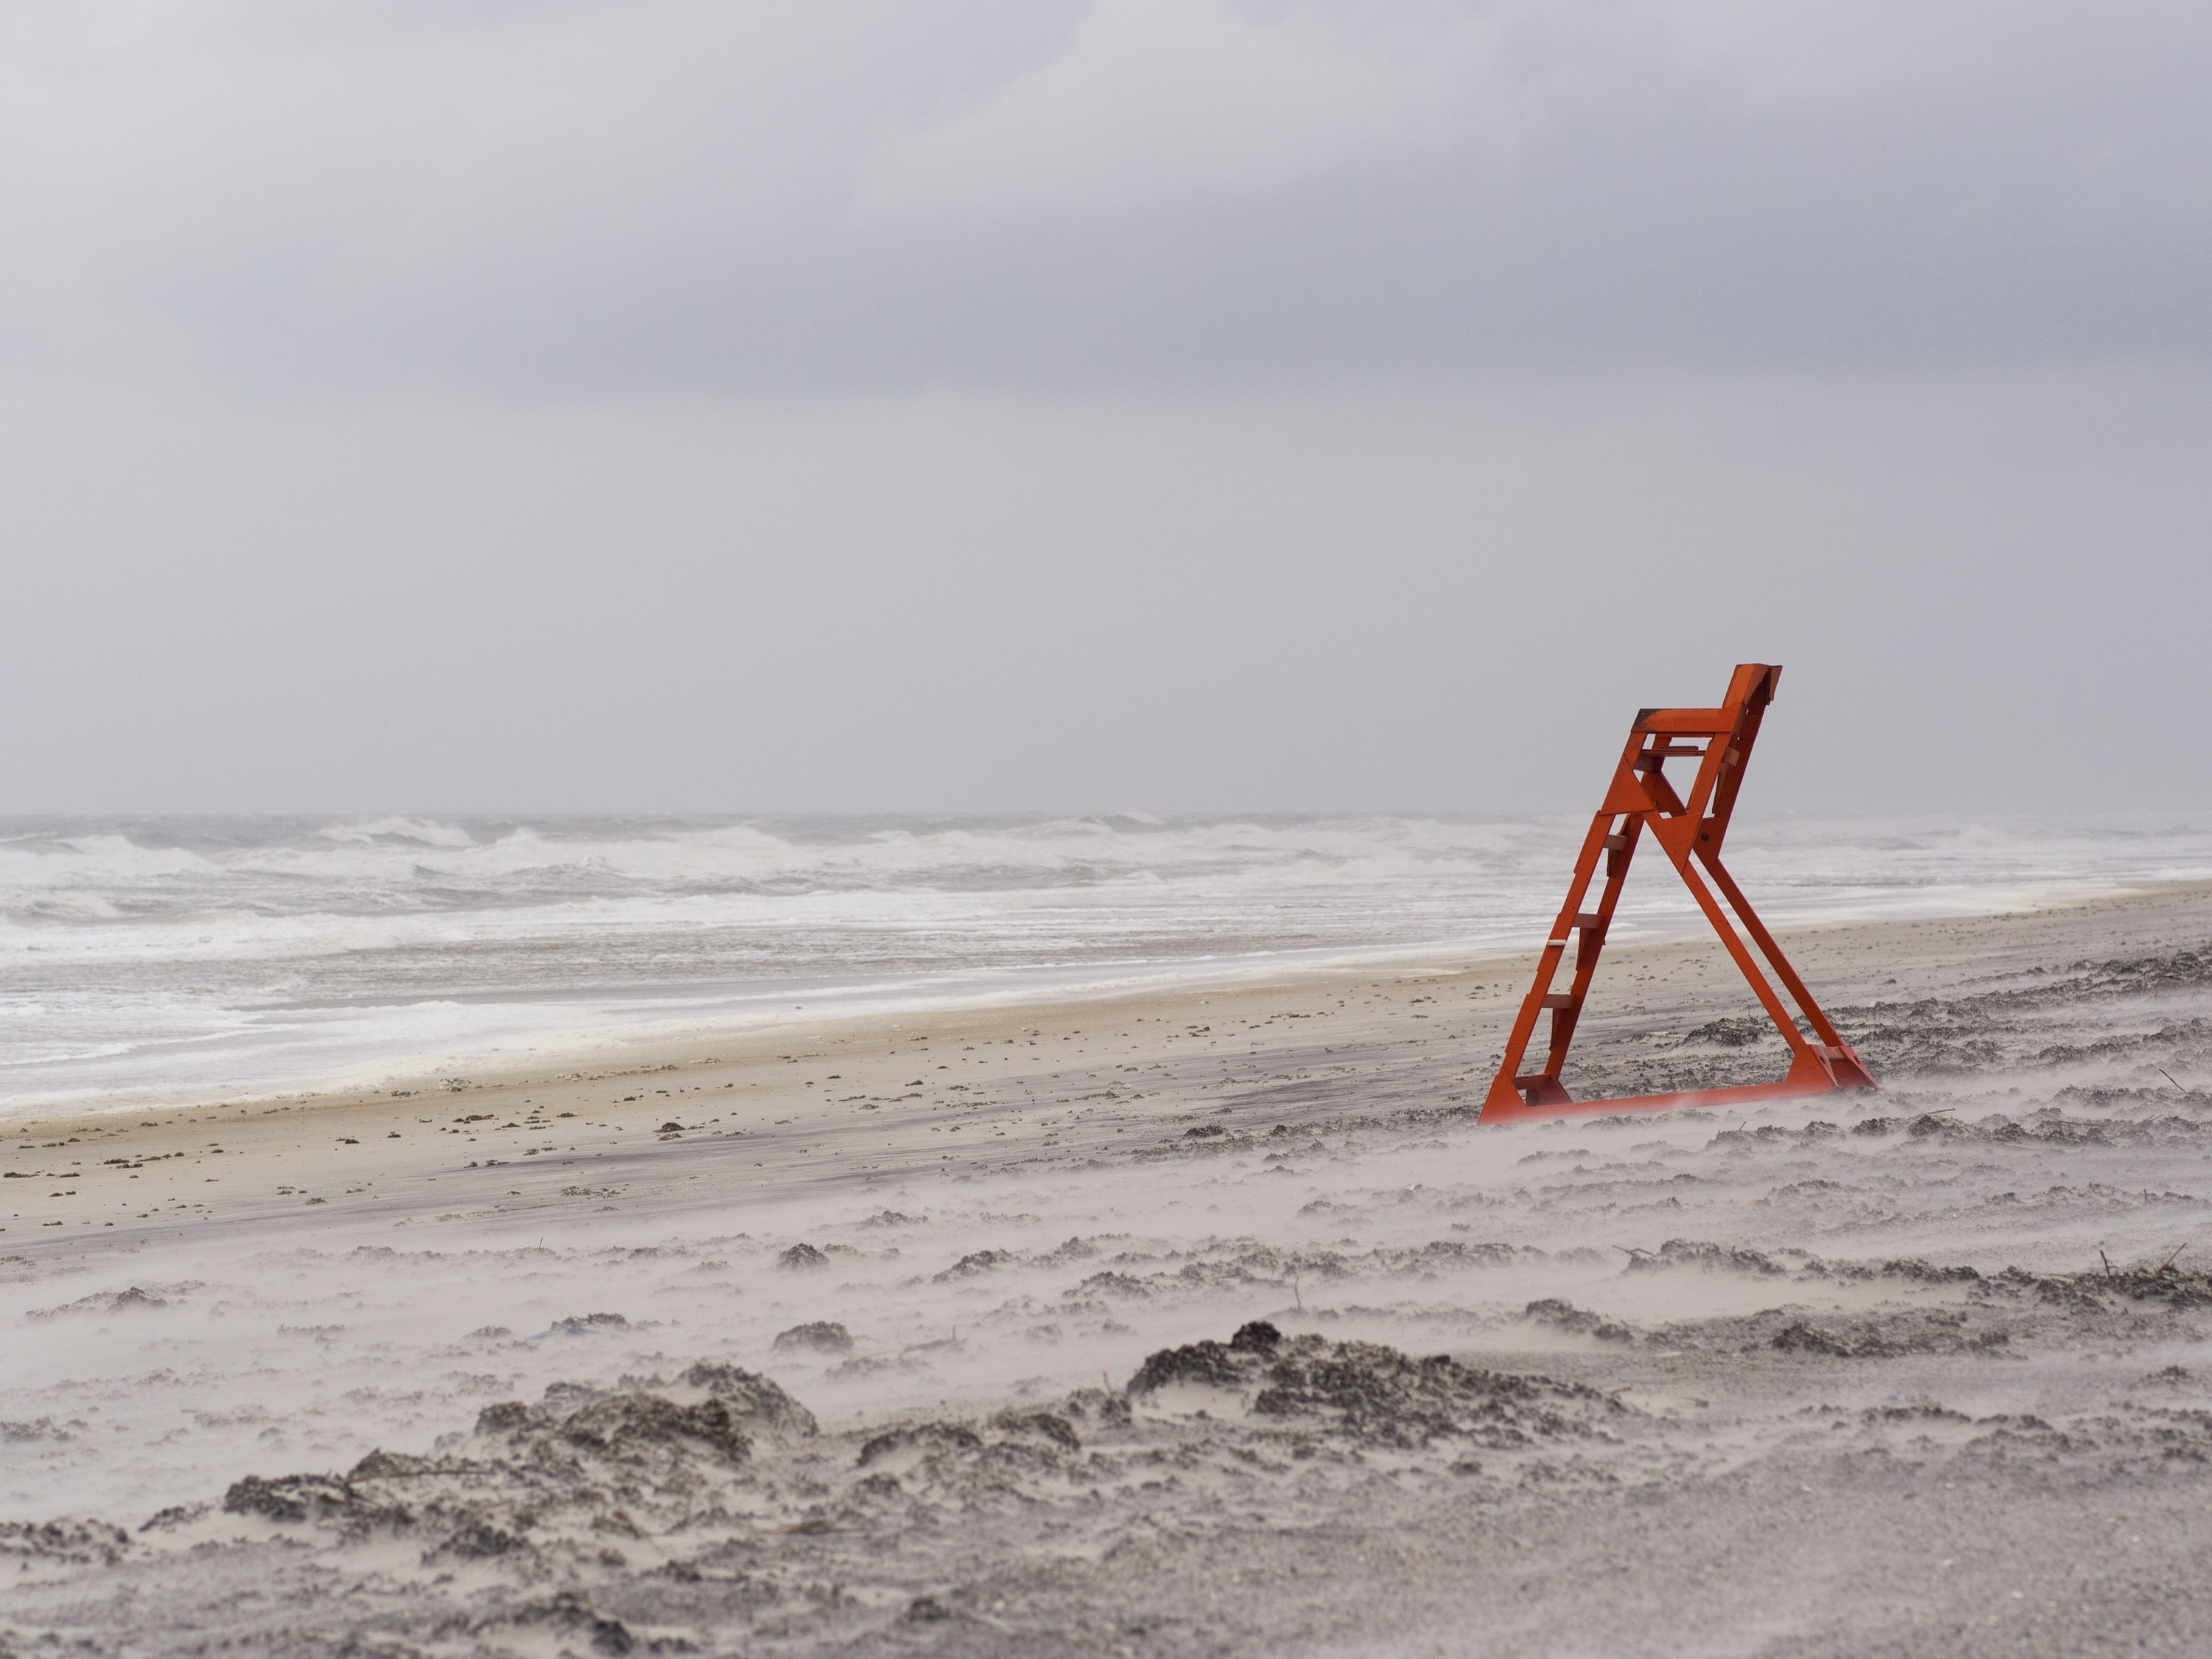 red metal ladder stand near seashore during daytime